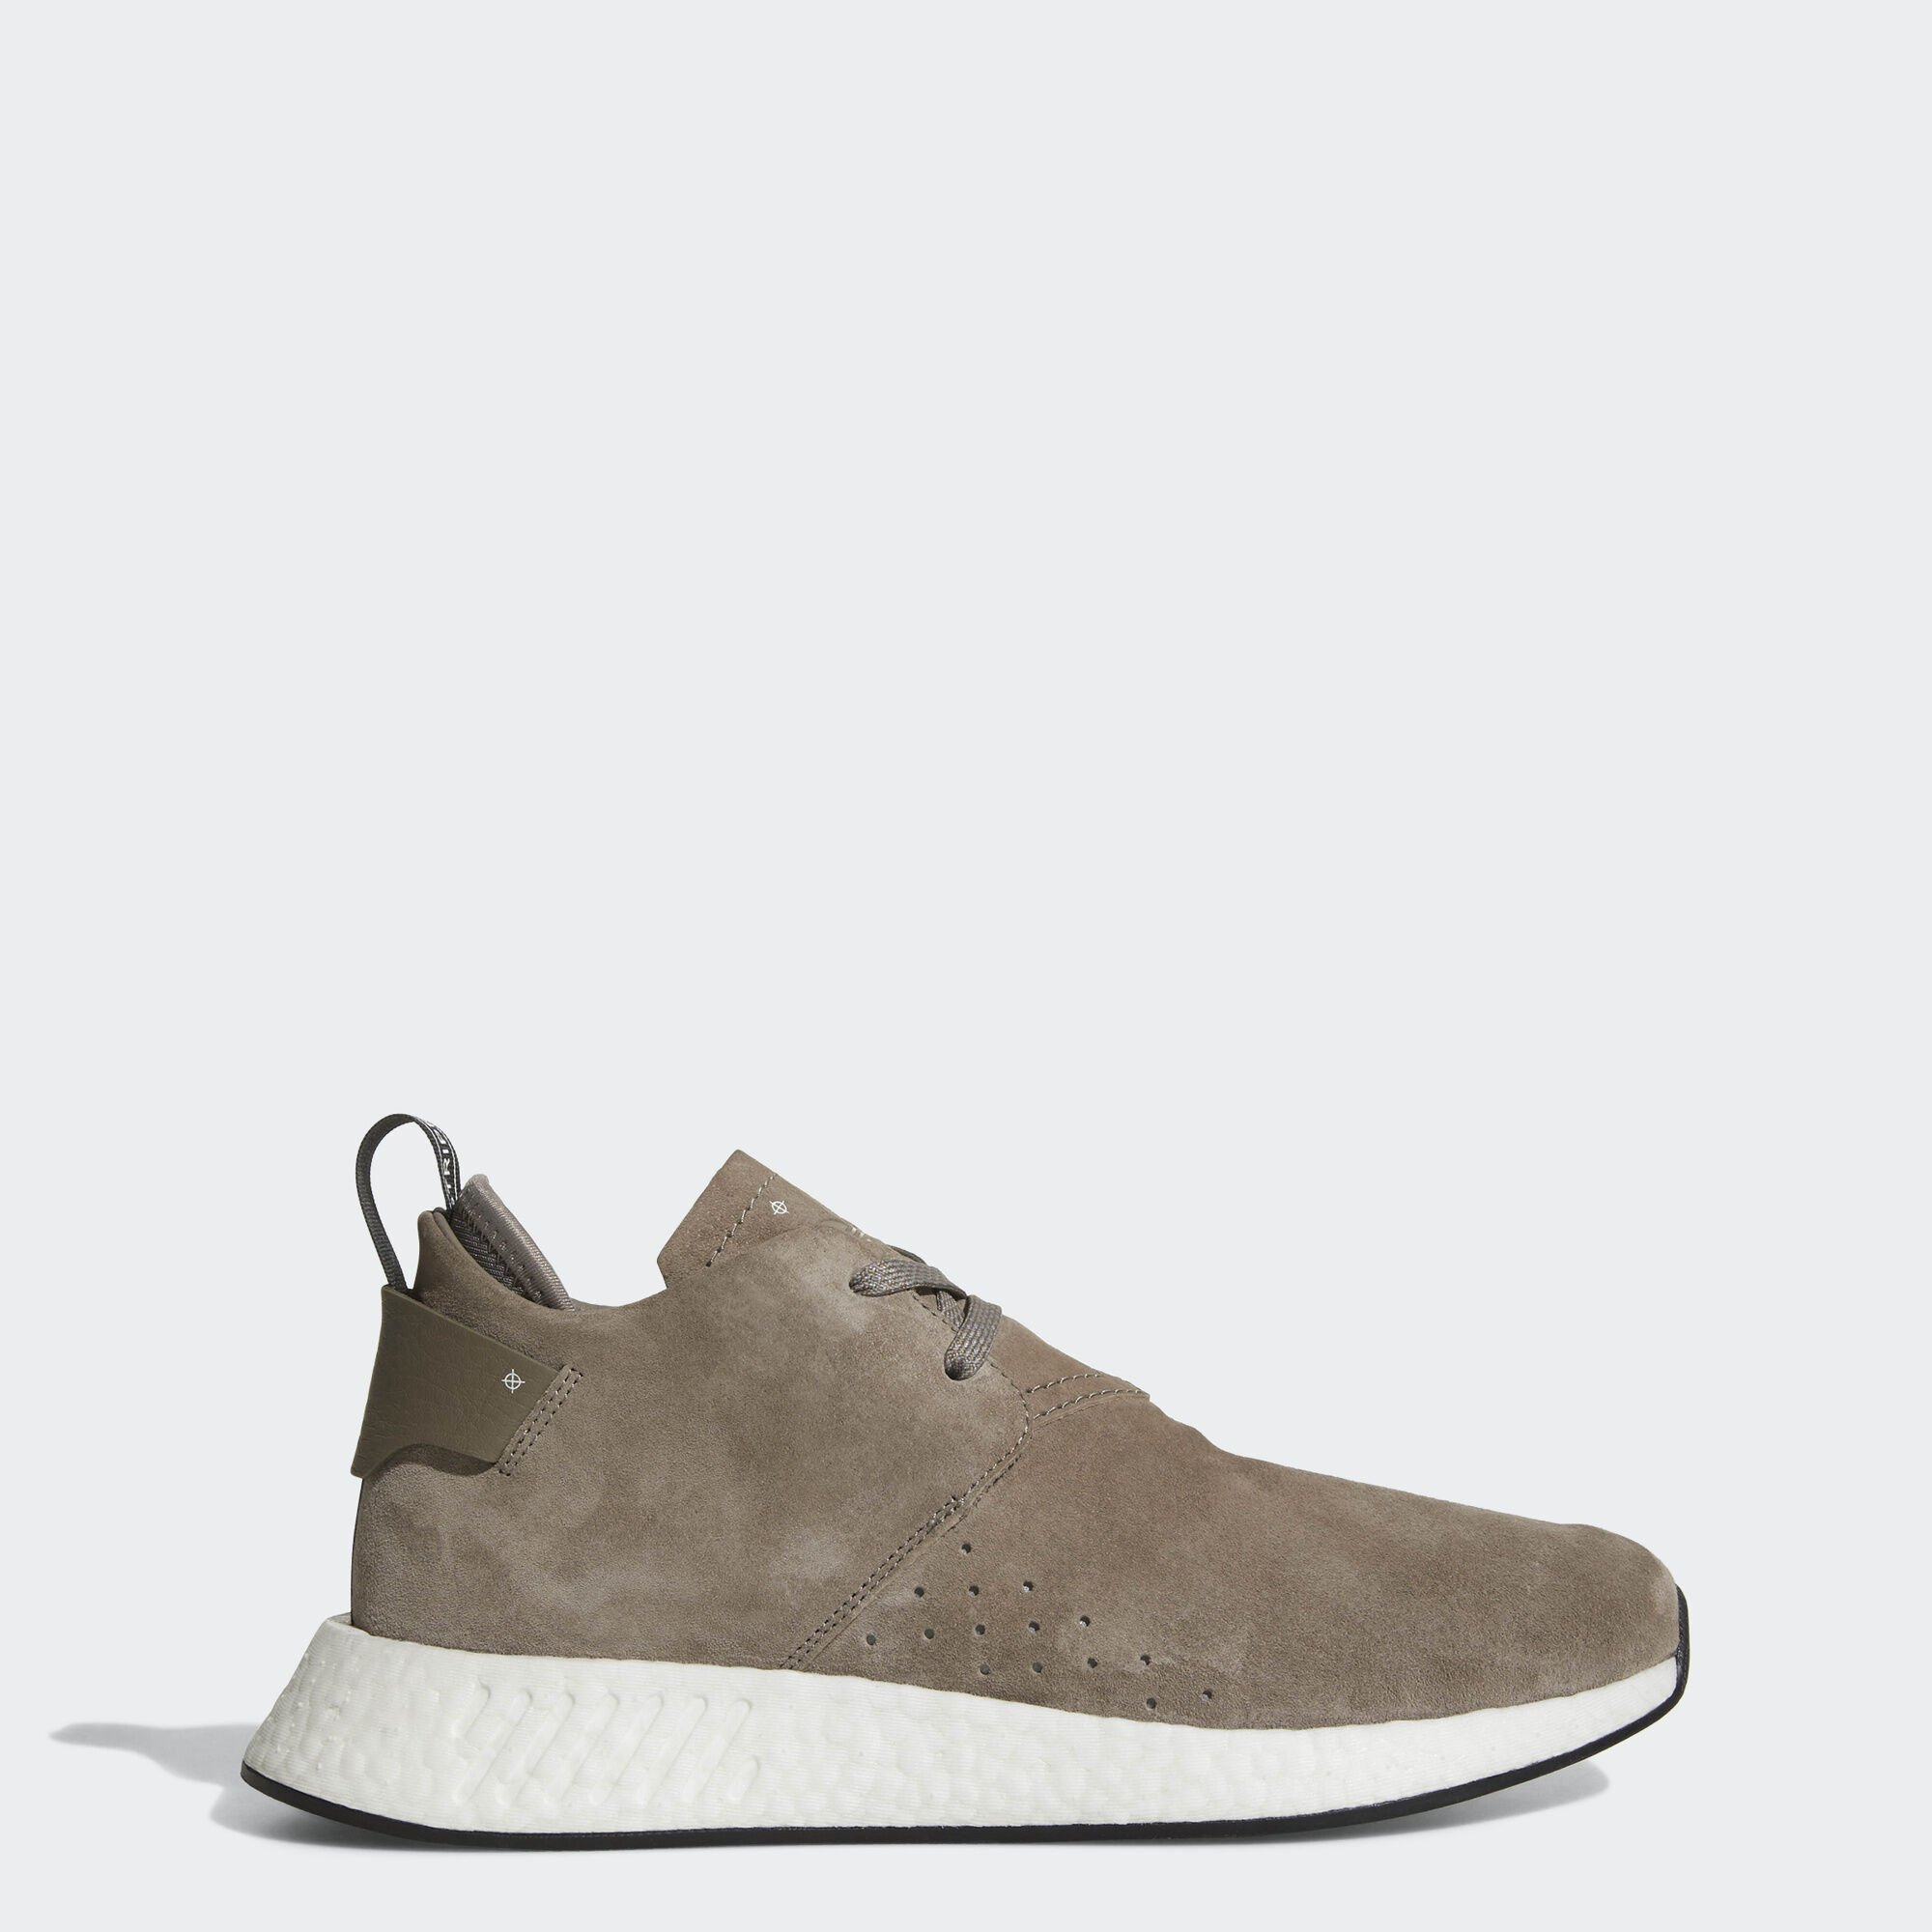 adidas  NMD CS2 Suede Brown (BY9913)